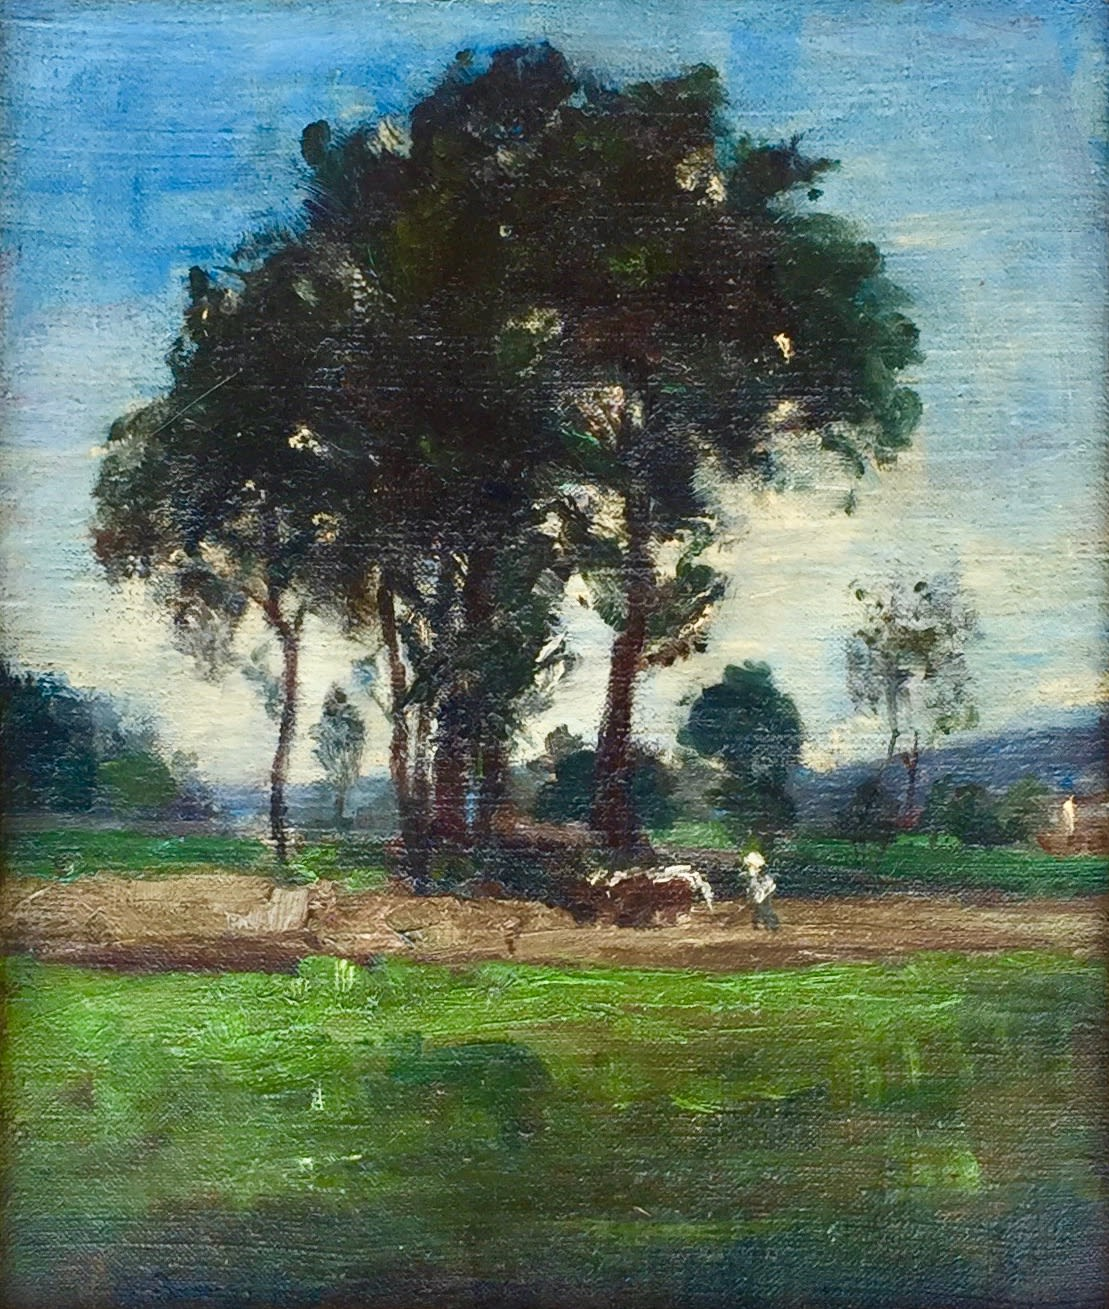 Edward Mitchell Bannister, Landscape trees in the middle, 3 cows on right, 1888